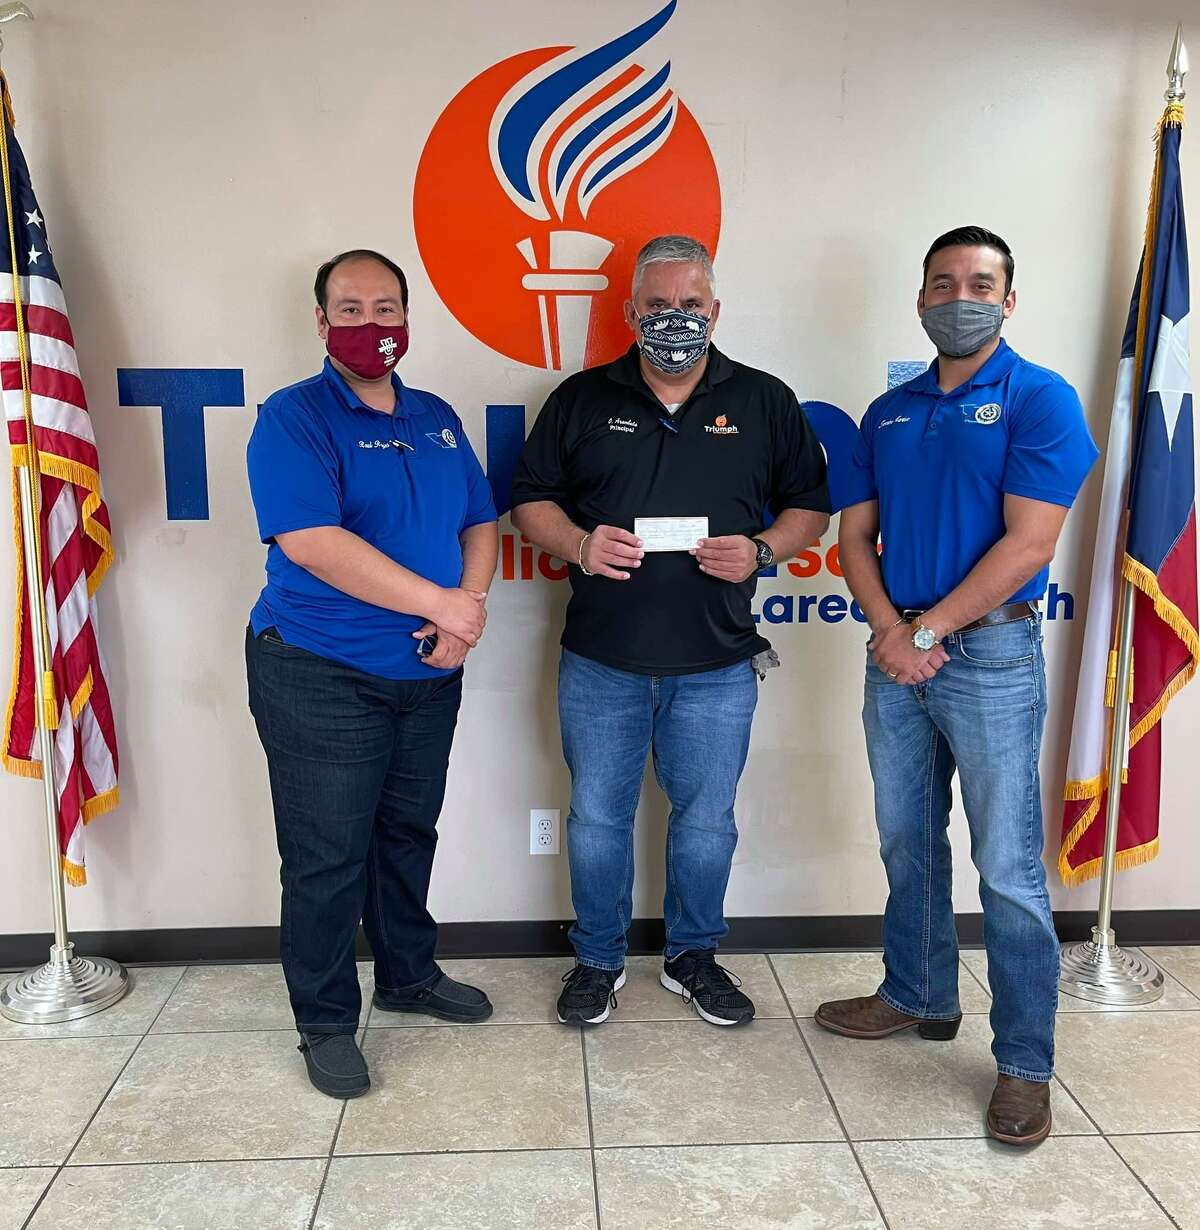 Webb County Treasurer Raul Reyes, left, and South Texas Latino Coalition President Jeronimo Martinez presented Triumph Public High School South Laredo Principal Odie Arambula a check for $300 to help purchase graduation caps and gowns for 10 graduating high school seniors.